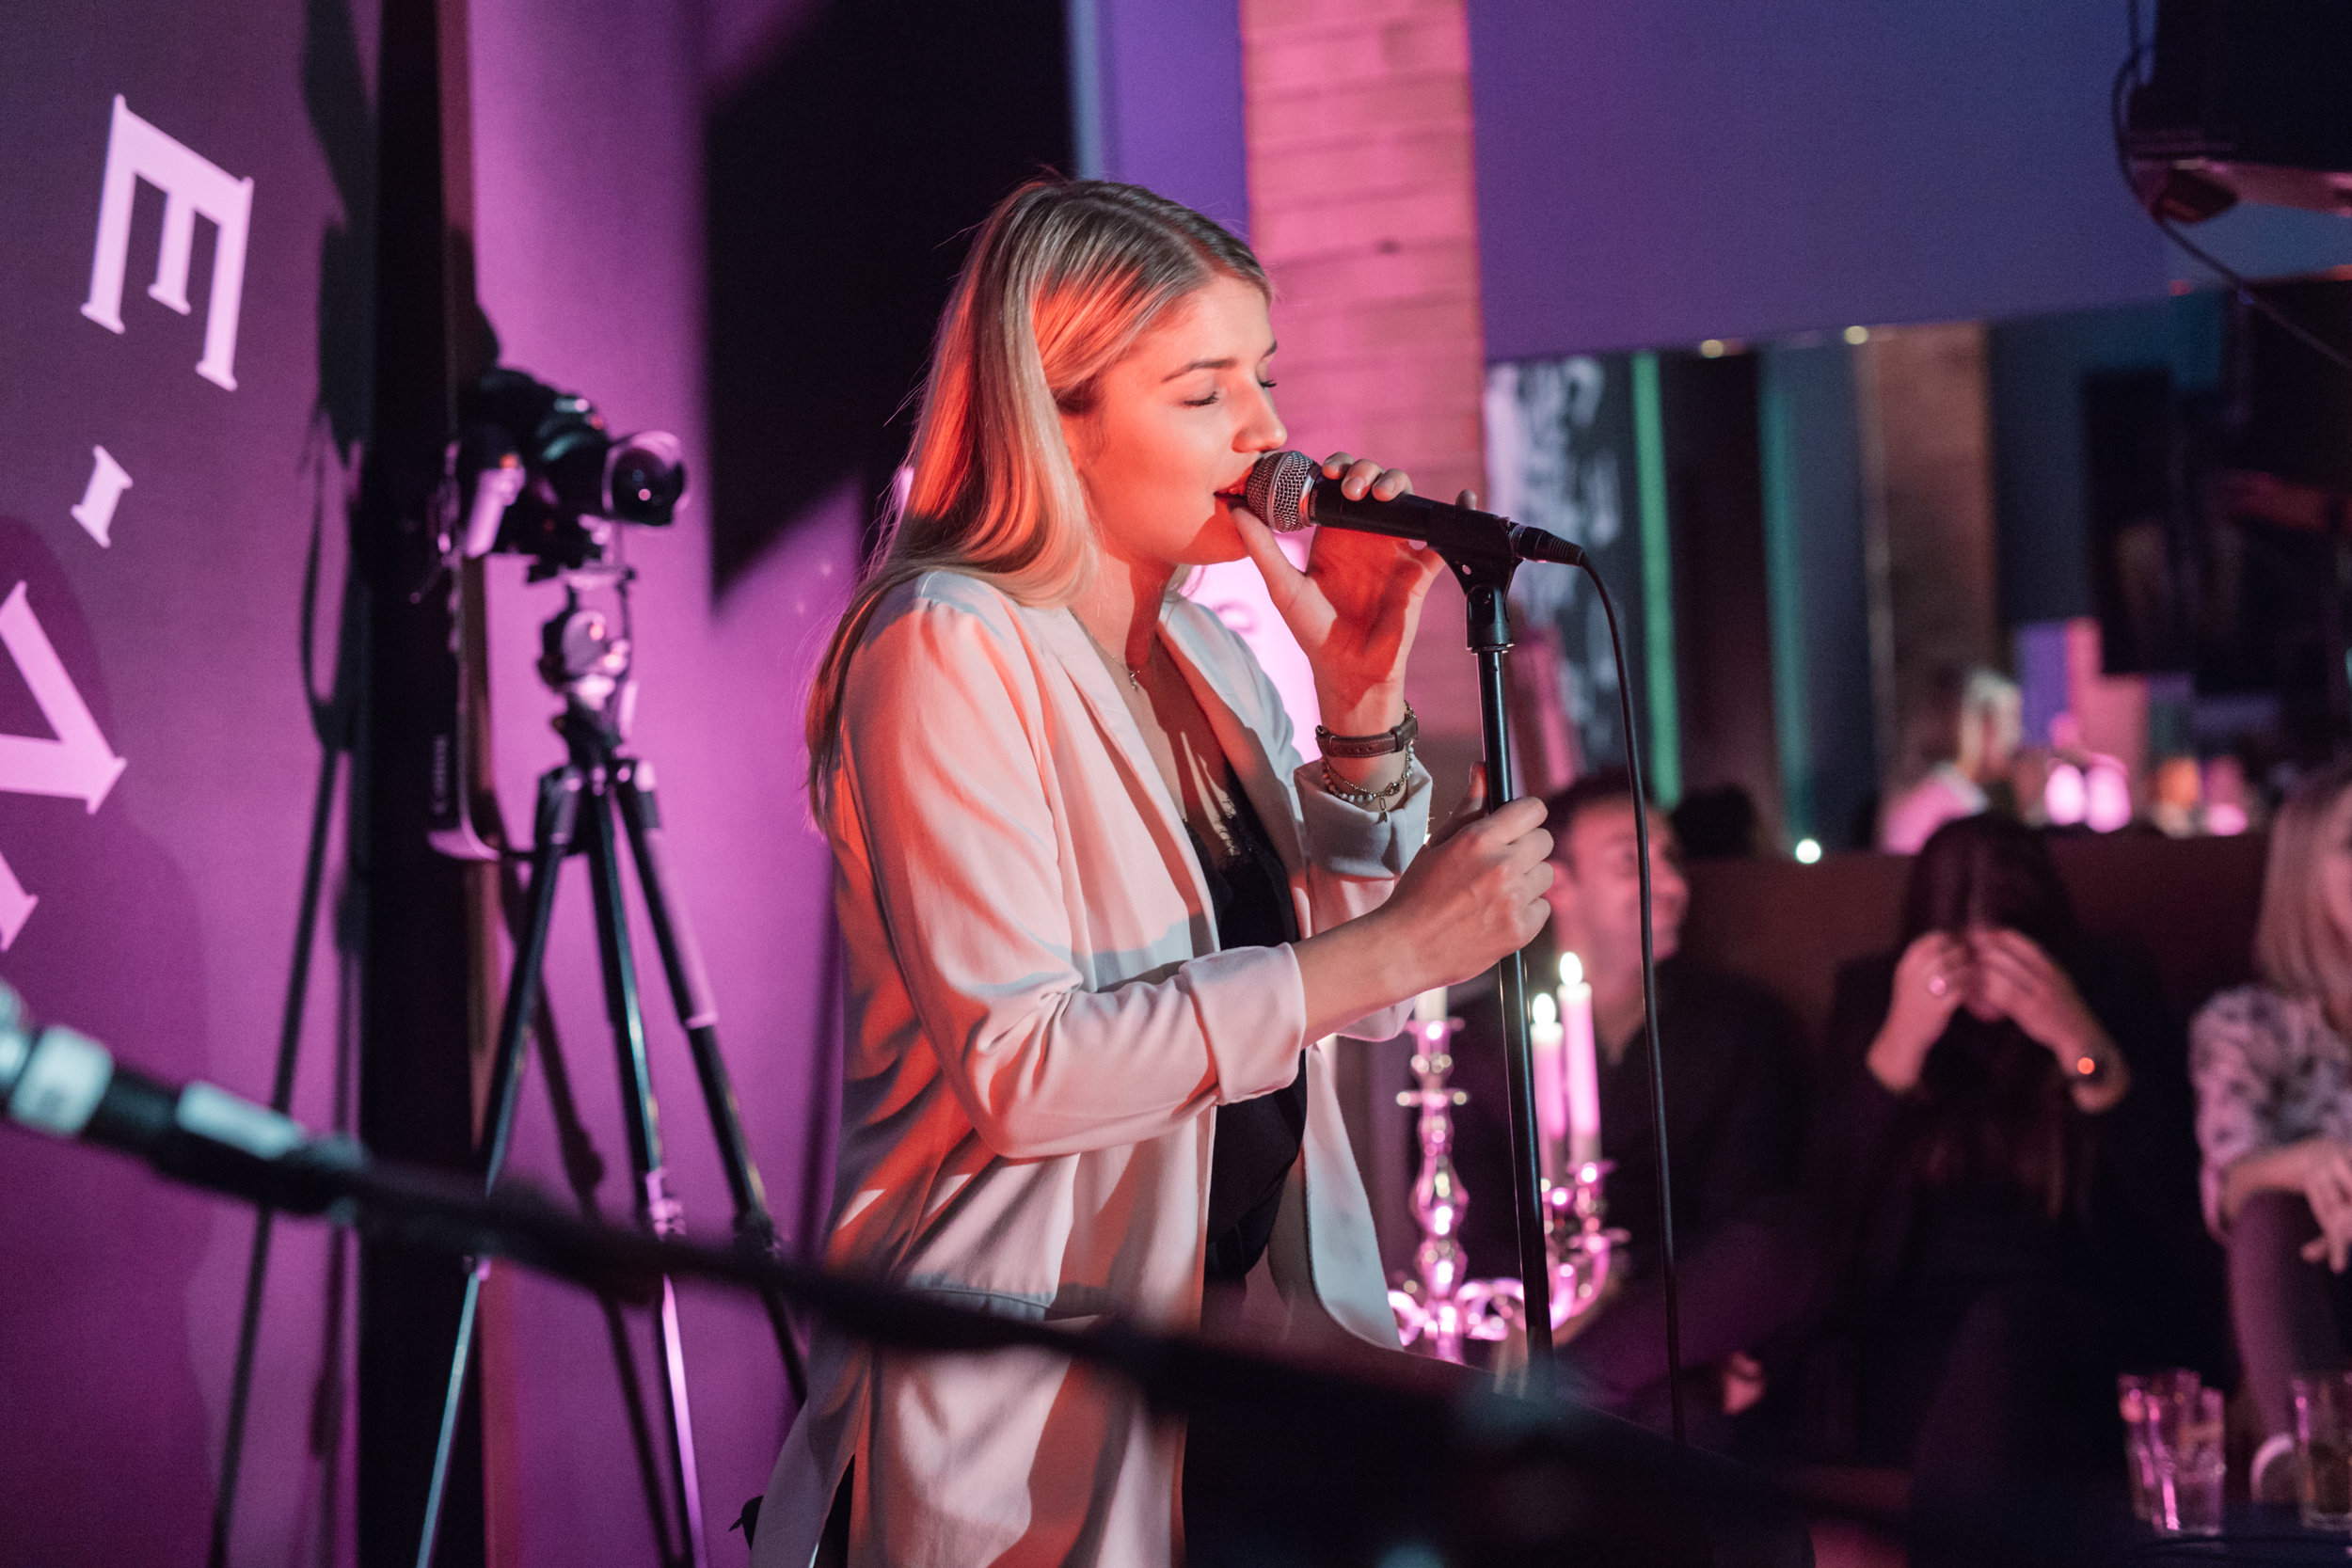 20170423-PRIVAT-SOUL-FOOD-CONCERT-NICOLE-CROSS-THINK-OUT-OF-THE-BOX-OFFENBLENDE-TK-01.jpg